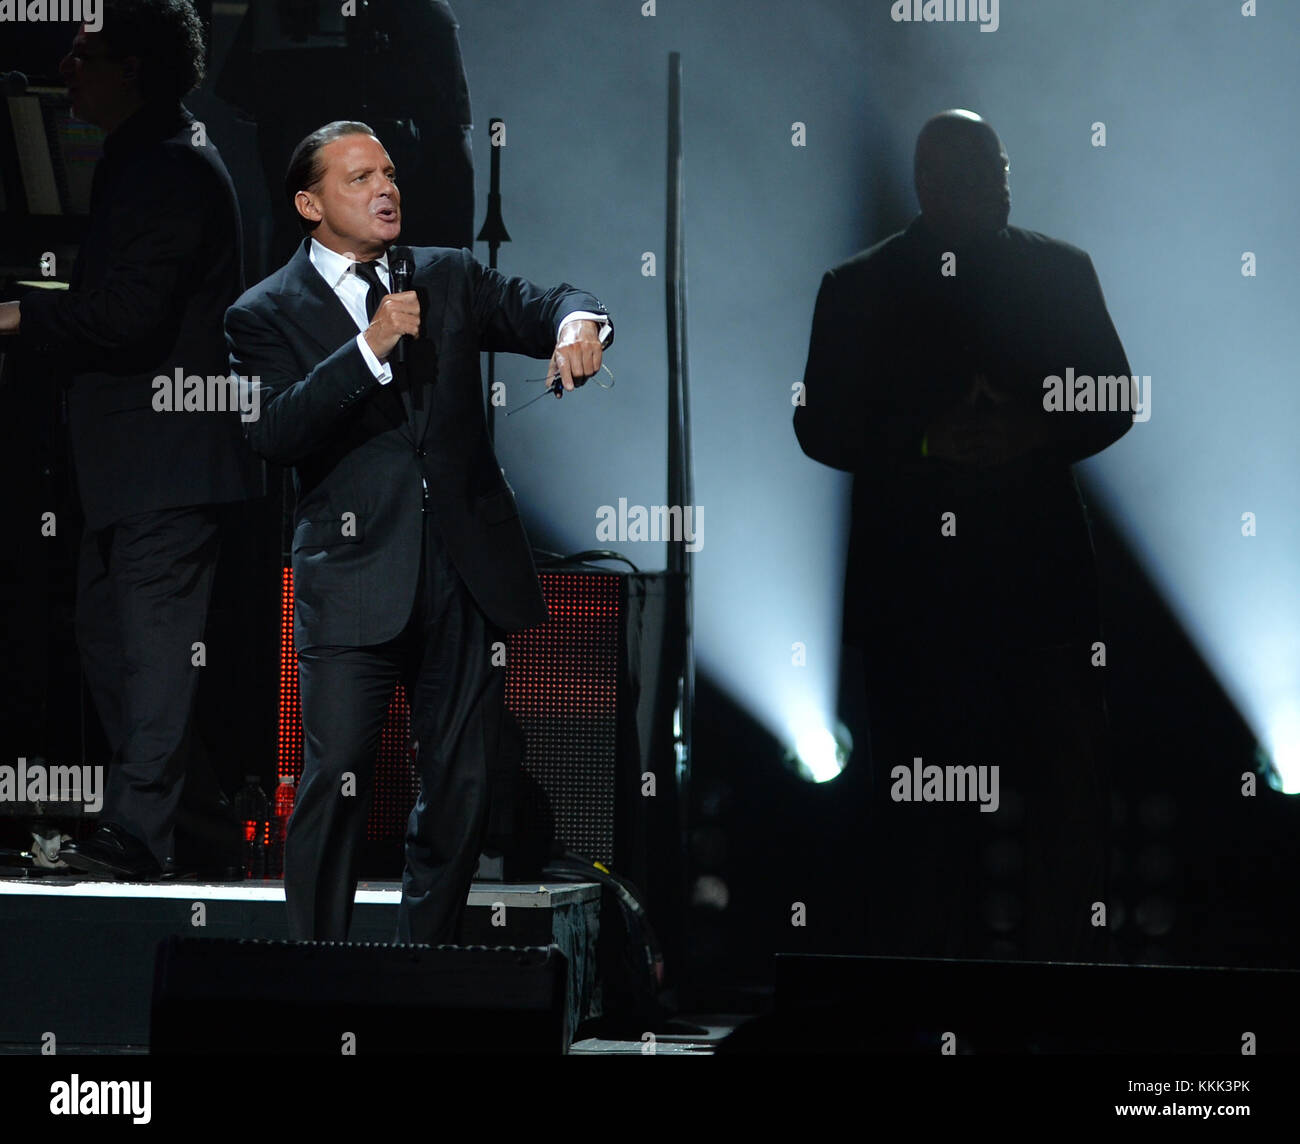 MIAMI, FL - DECEMBER 10: Singer Luis Miguel seems paranoid after attacks in Paris and Performs with bodyguard on - Stock Image